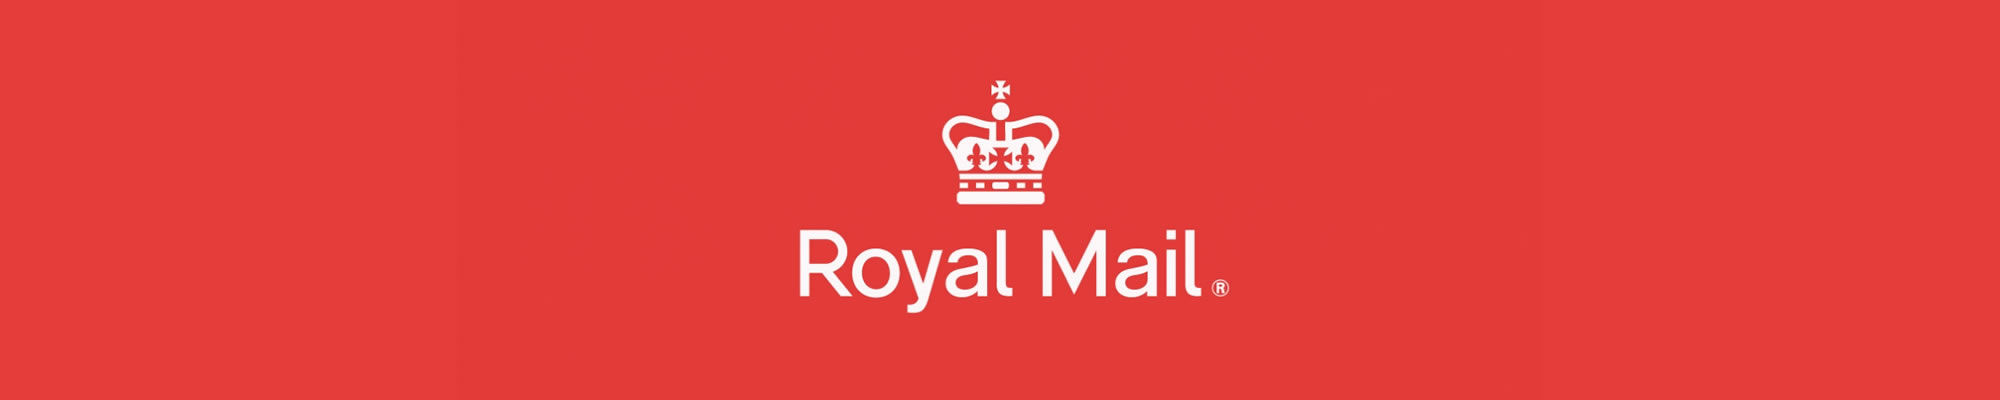 Royal Mail logo banner